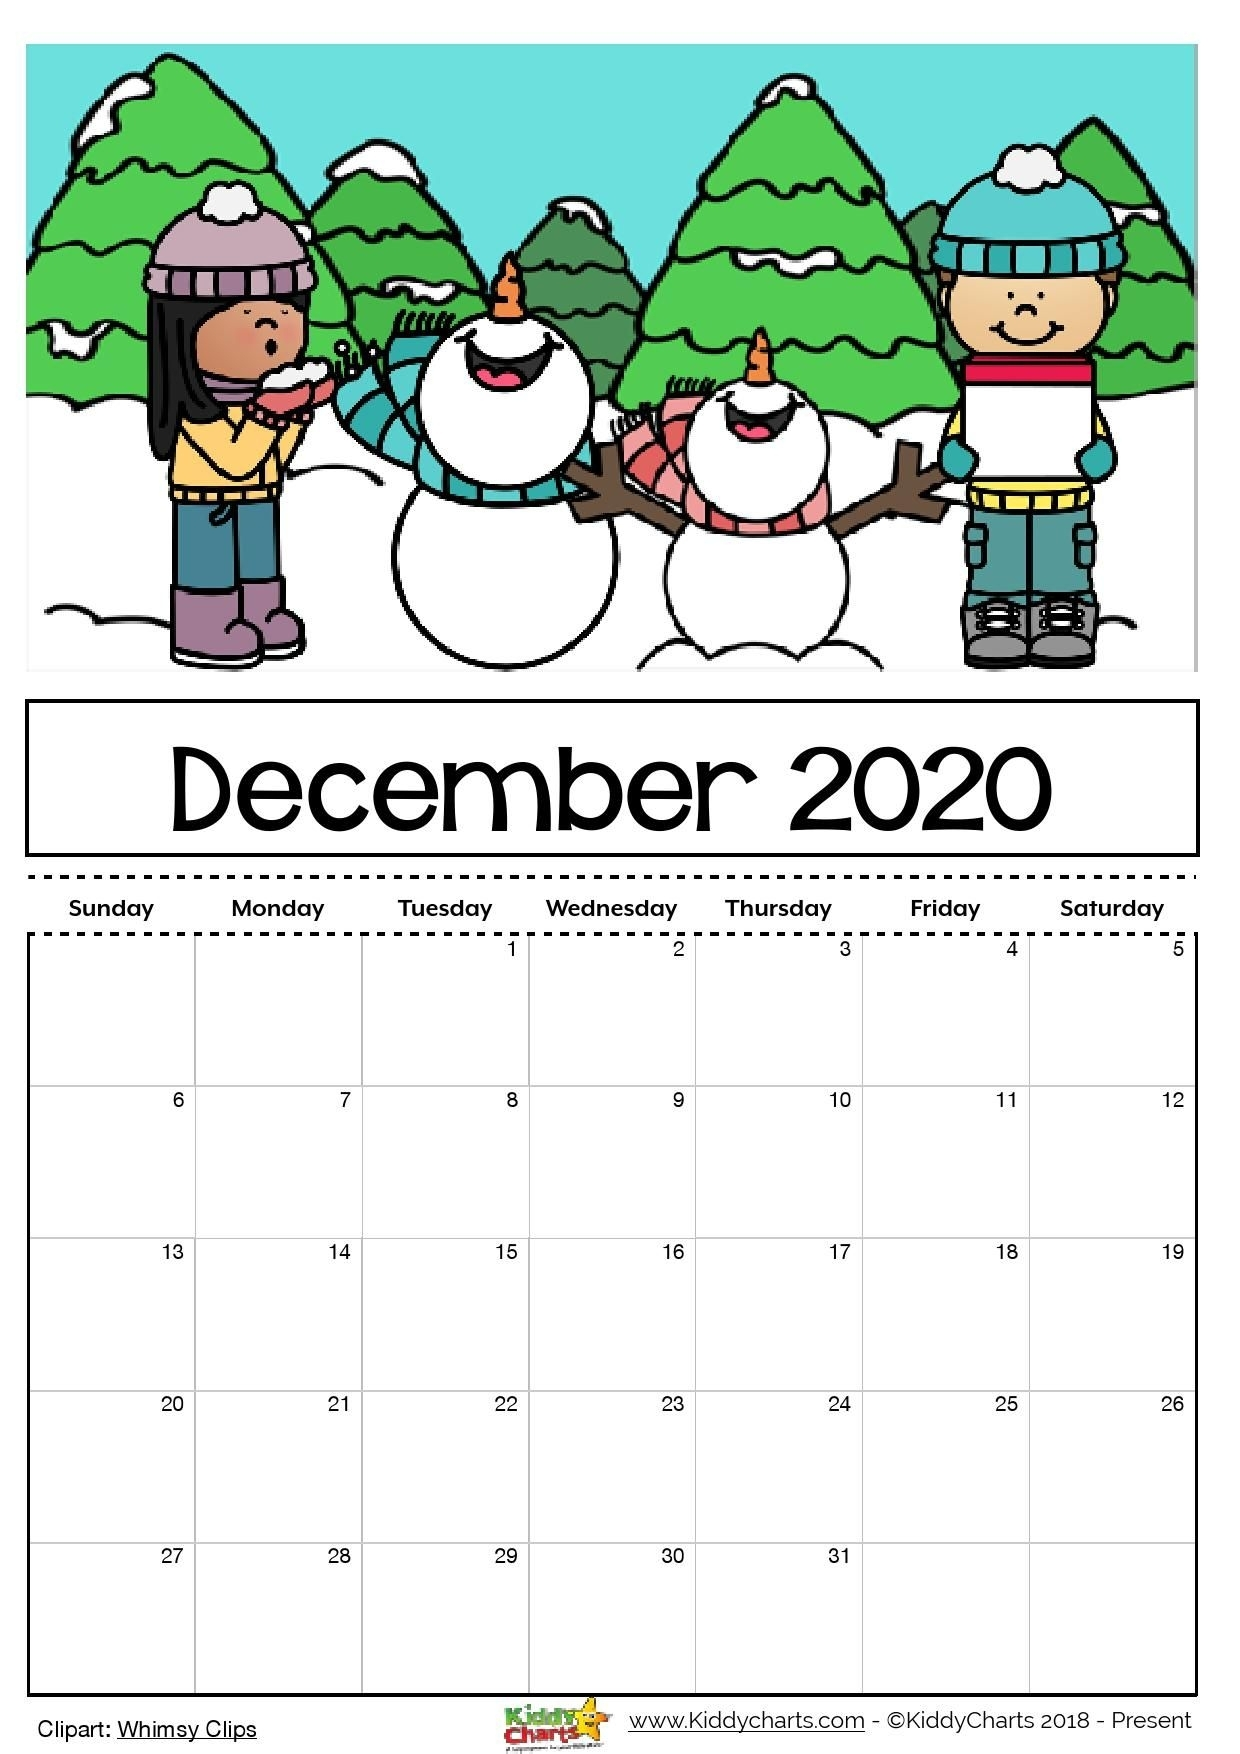 Check Out Our Free Editable 2020 Calendar Available For for Free Printable Children Calendars 2020 That Children Can Draw On